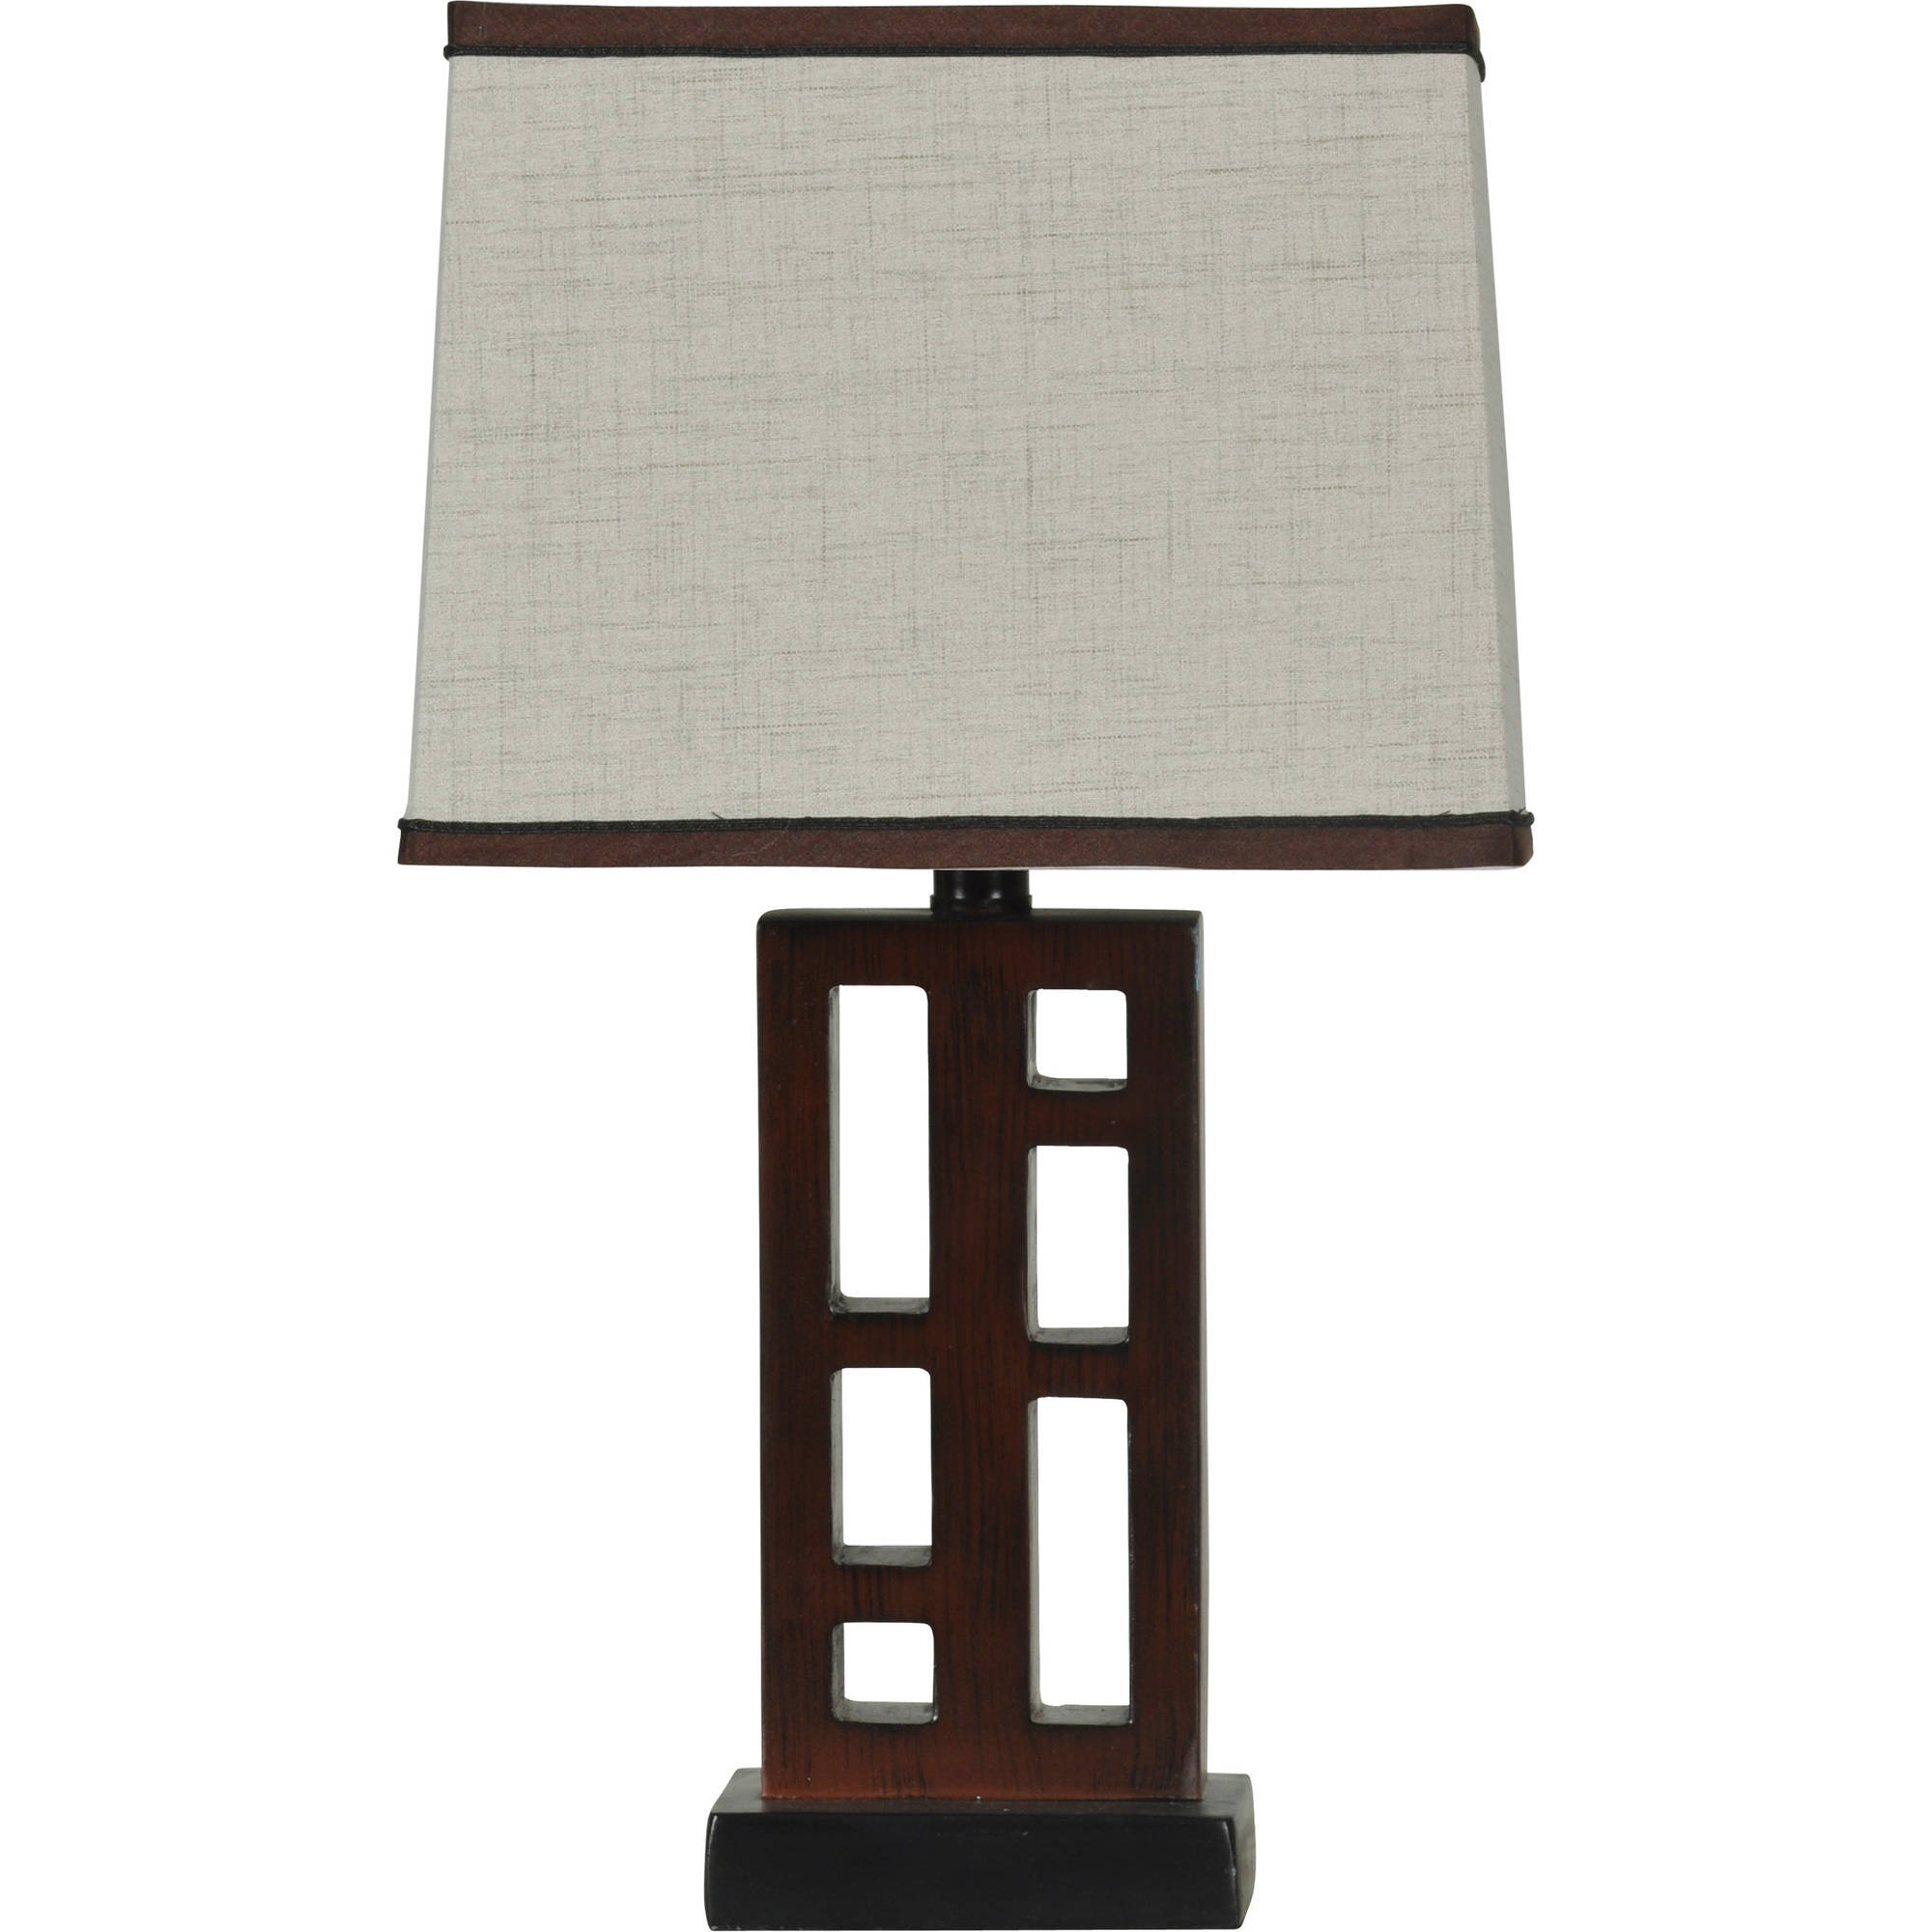 Click here to buy Better Homes and Gardens Open Works Lamp with Shade, Walnut by Stylecraft.